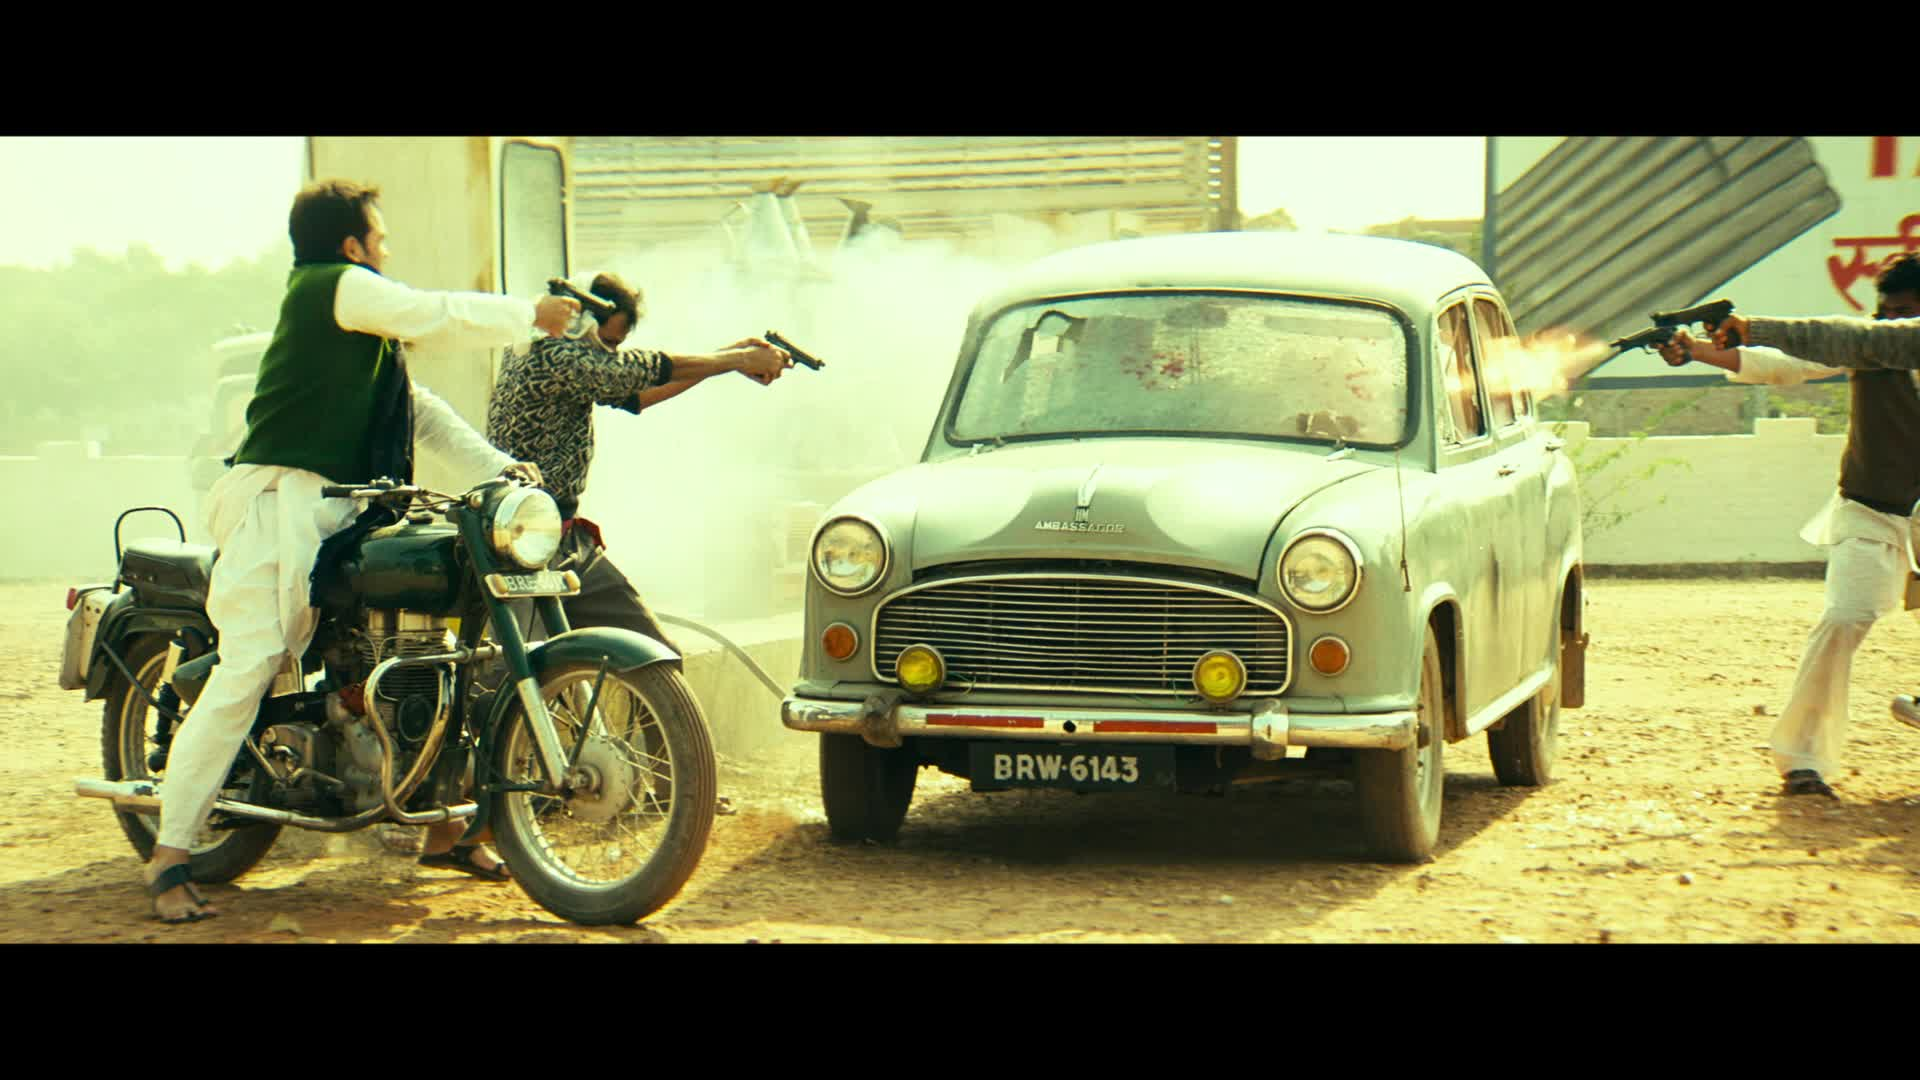 Gangs of Wasseypur is the Modern, Epic Masterpiece You Must See